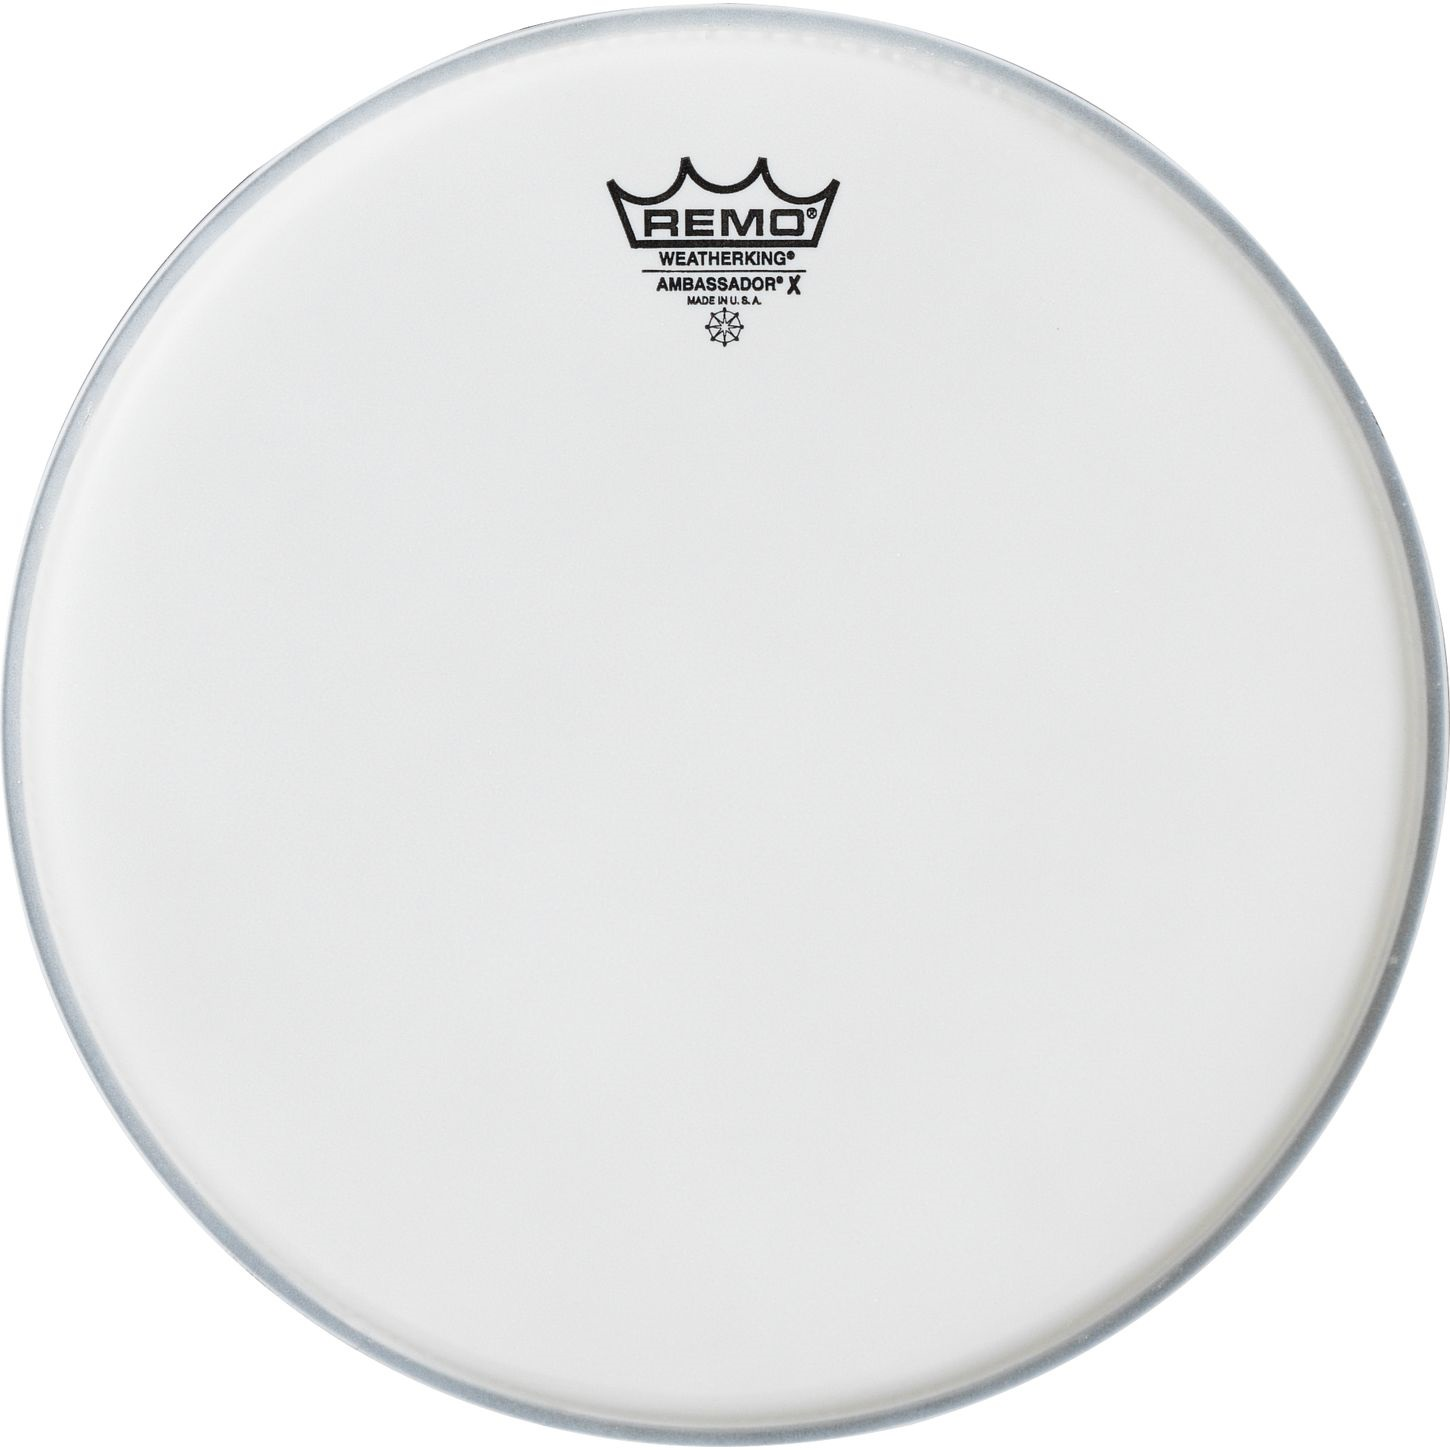 "Remo 8"" Ambassador X Coated"